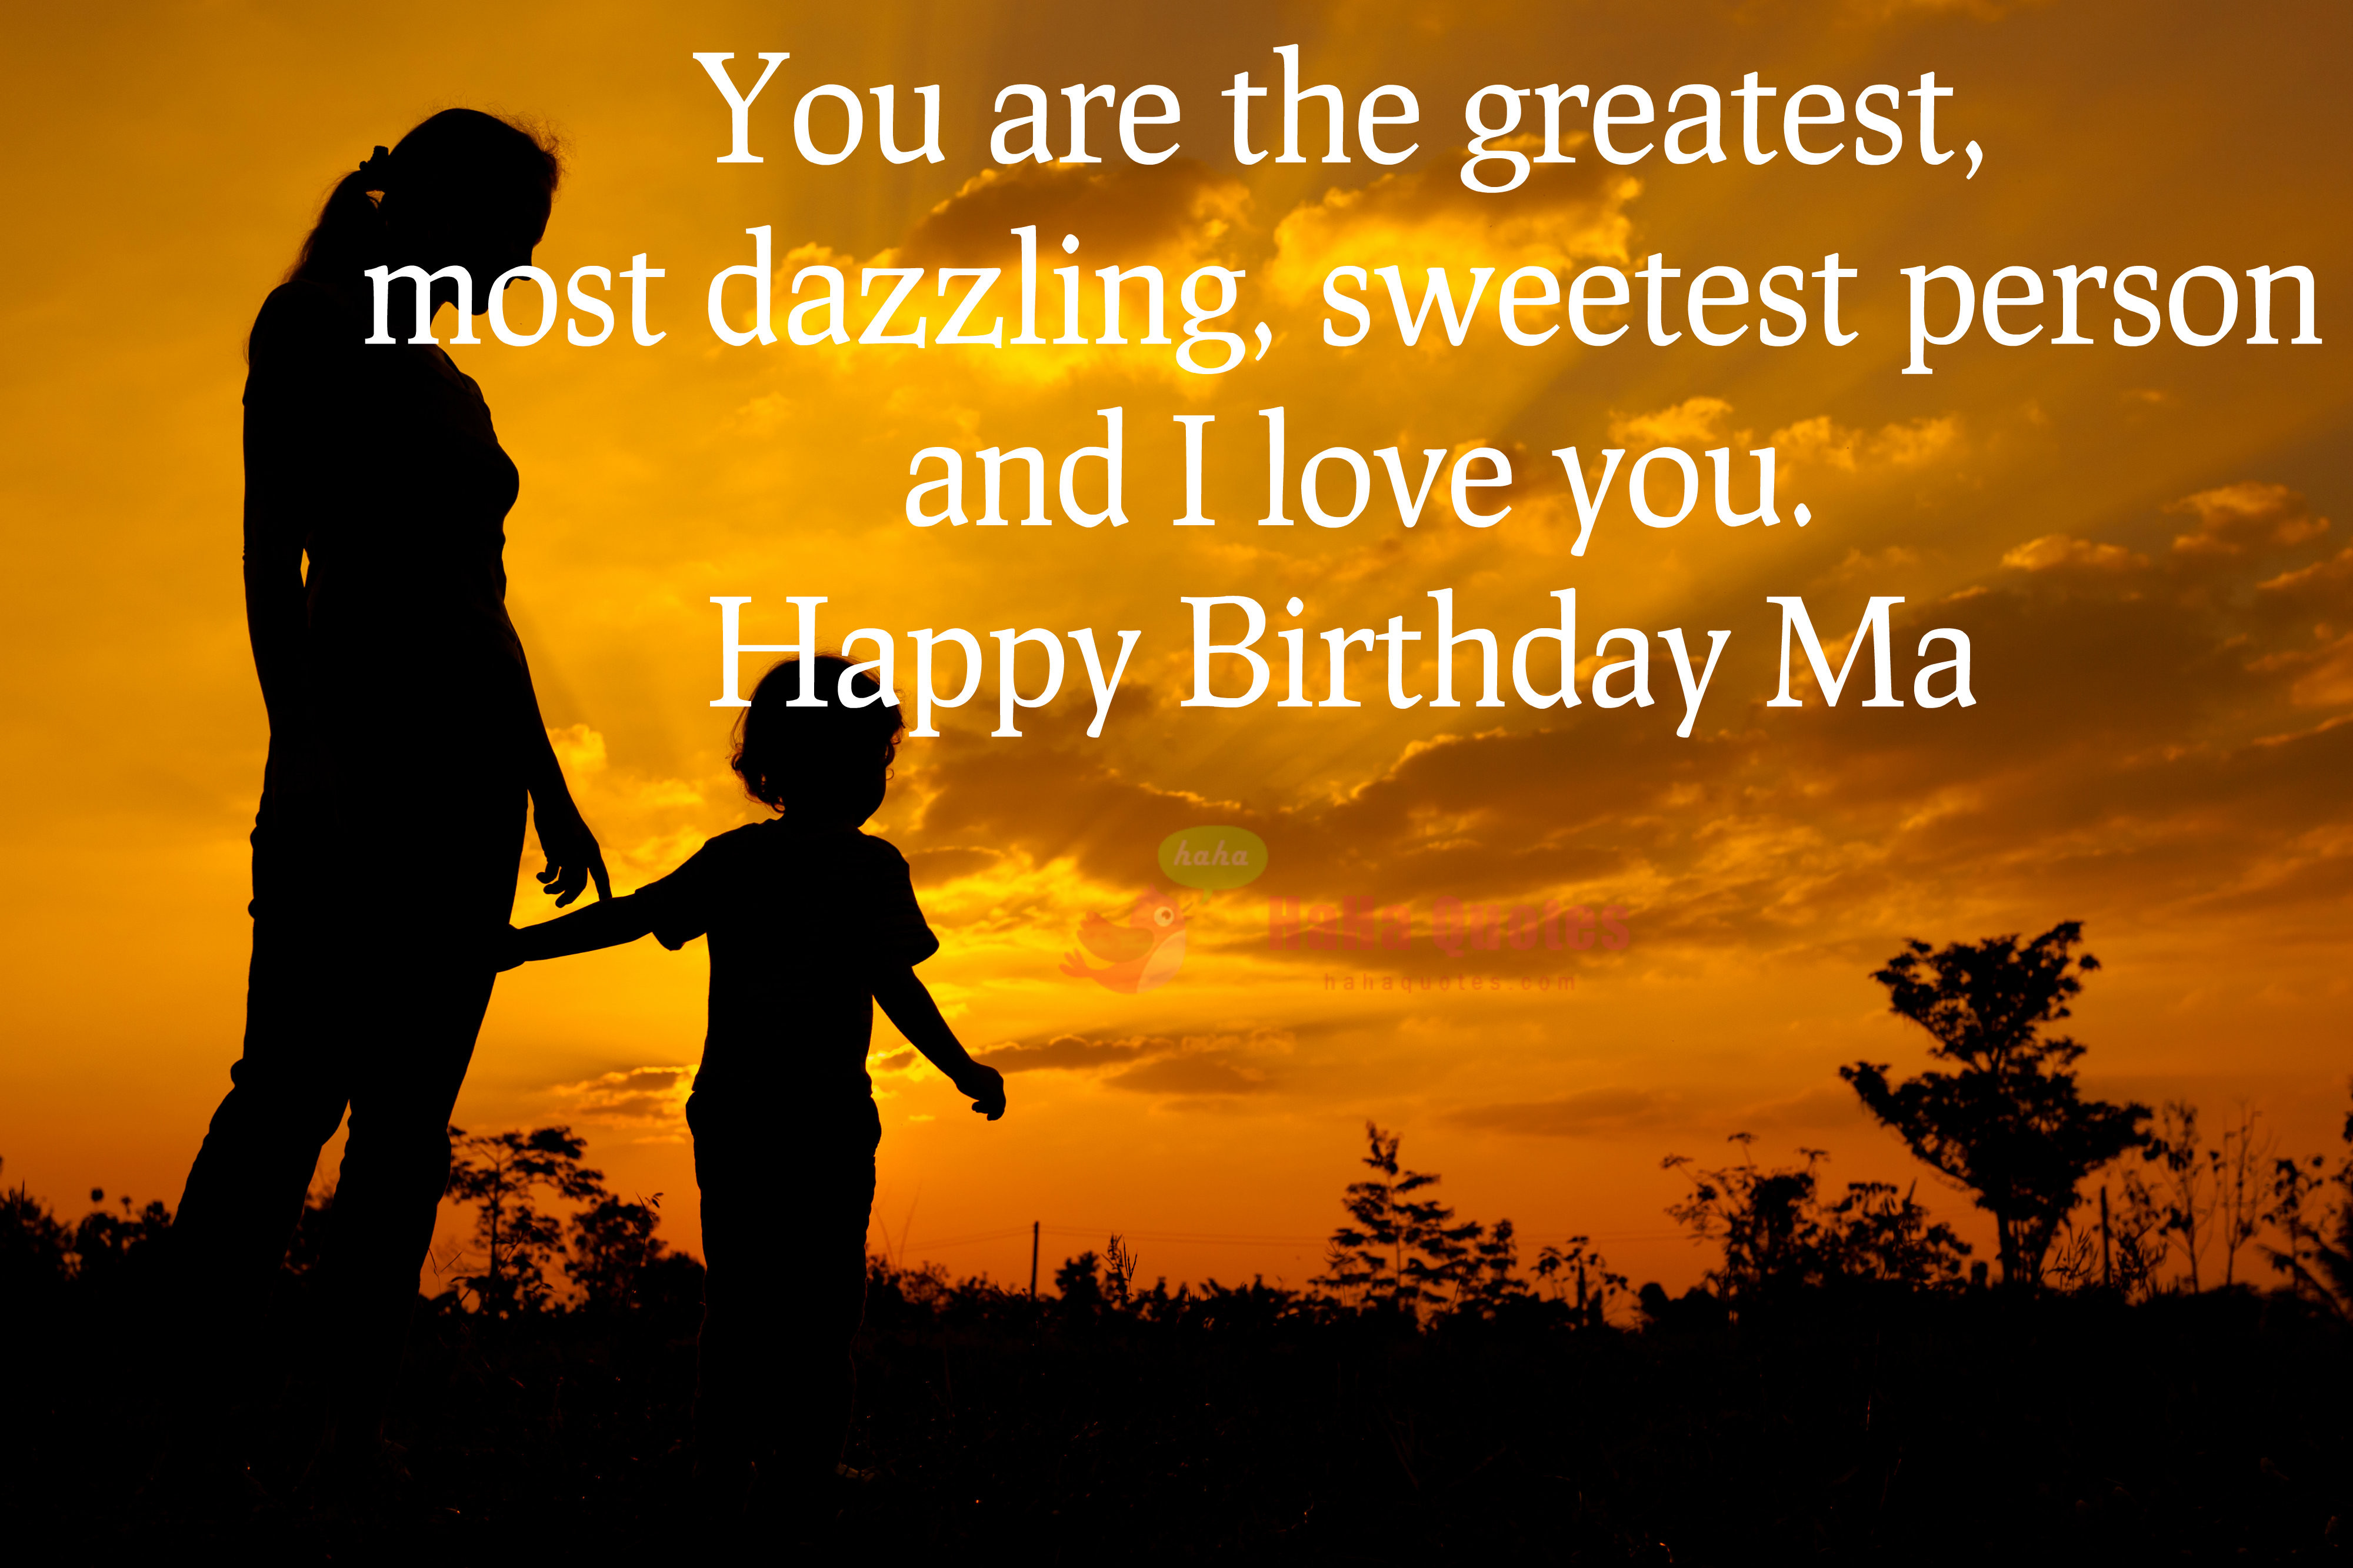 Best ideas about Birthday Wishes From Mom To Son . Save or Pin Happy Birthday Mom Quotes Now.